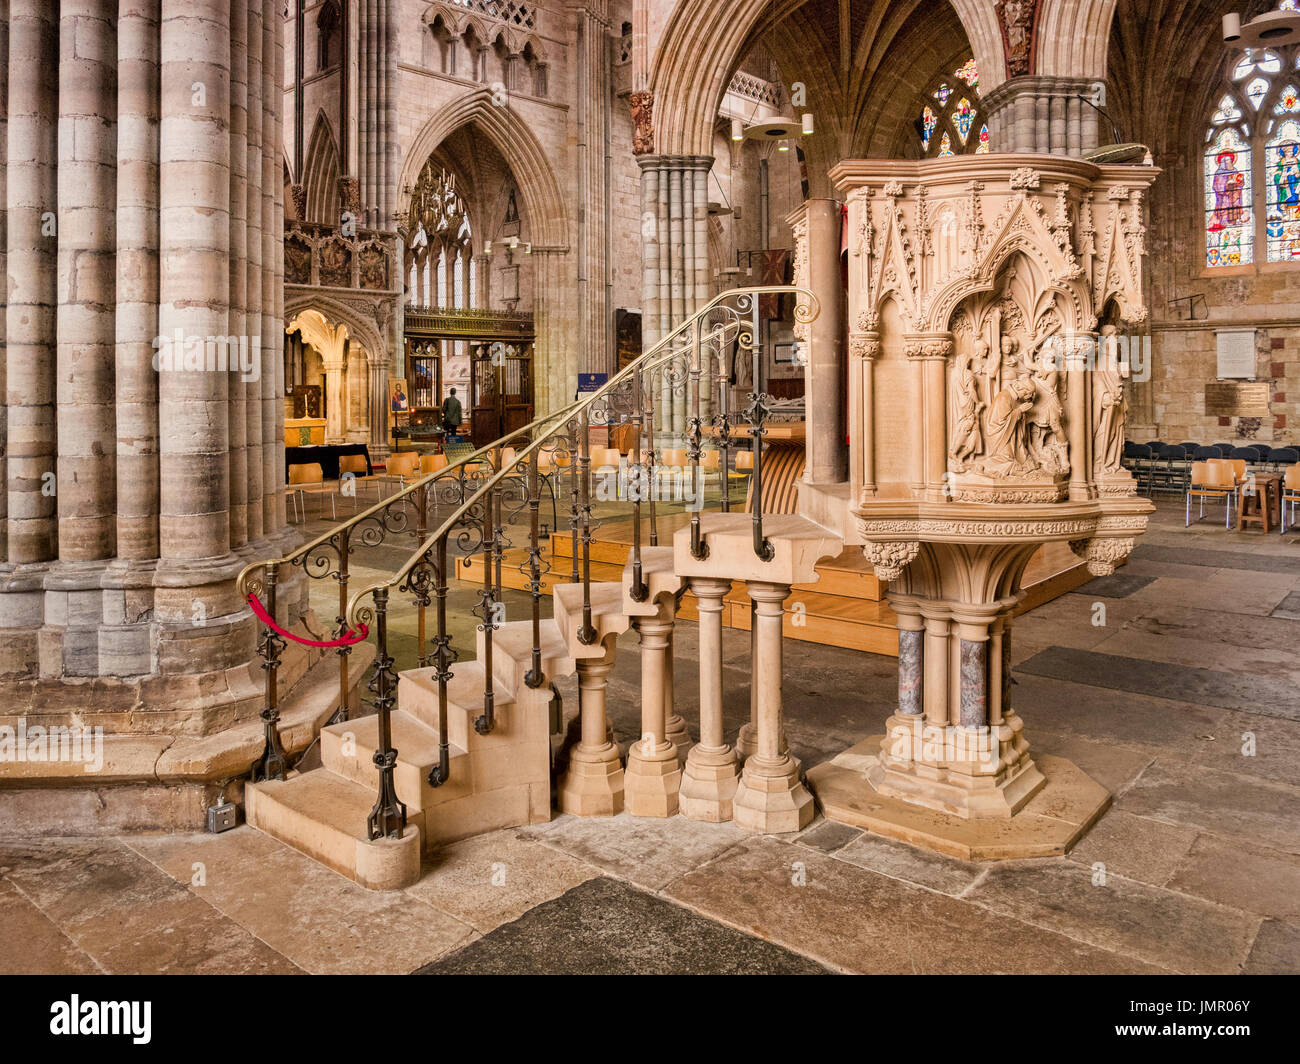 24 June 2017: Exeter, Devon, England, UK - The Martyr's Pulpit, installed in 1877, in Exeter Cathedral, Devon. - Stock Image